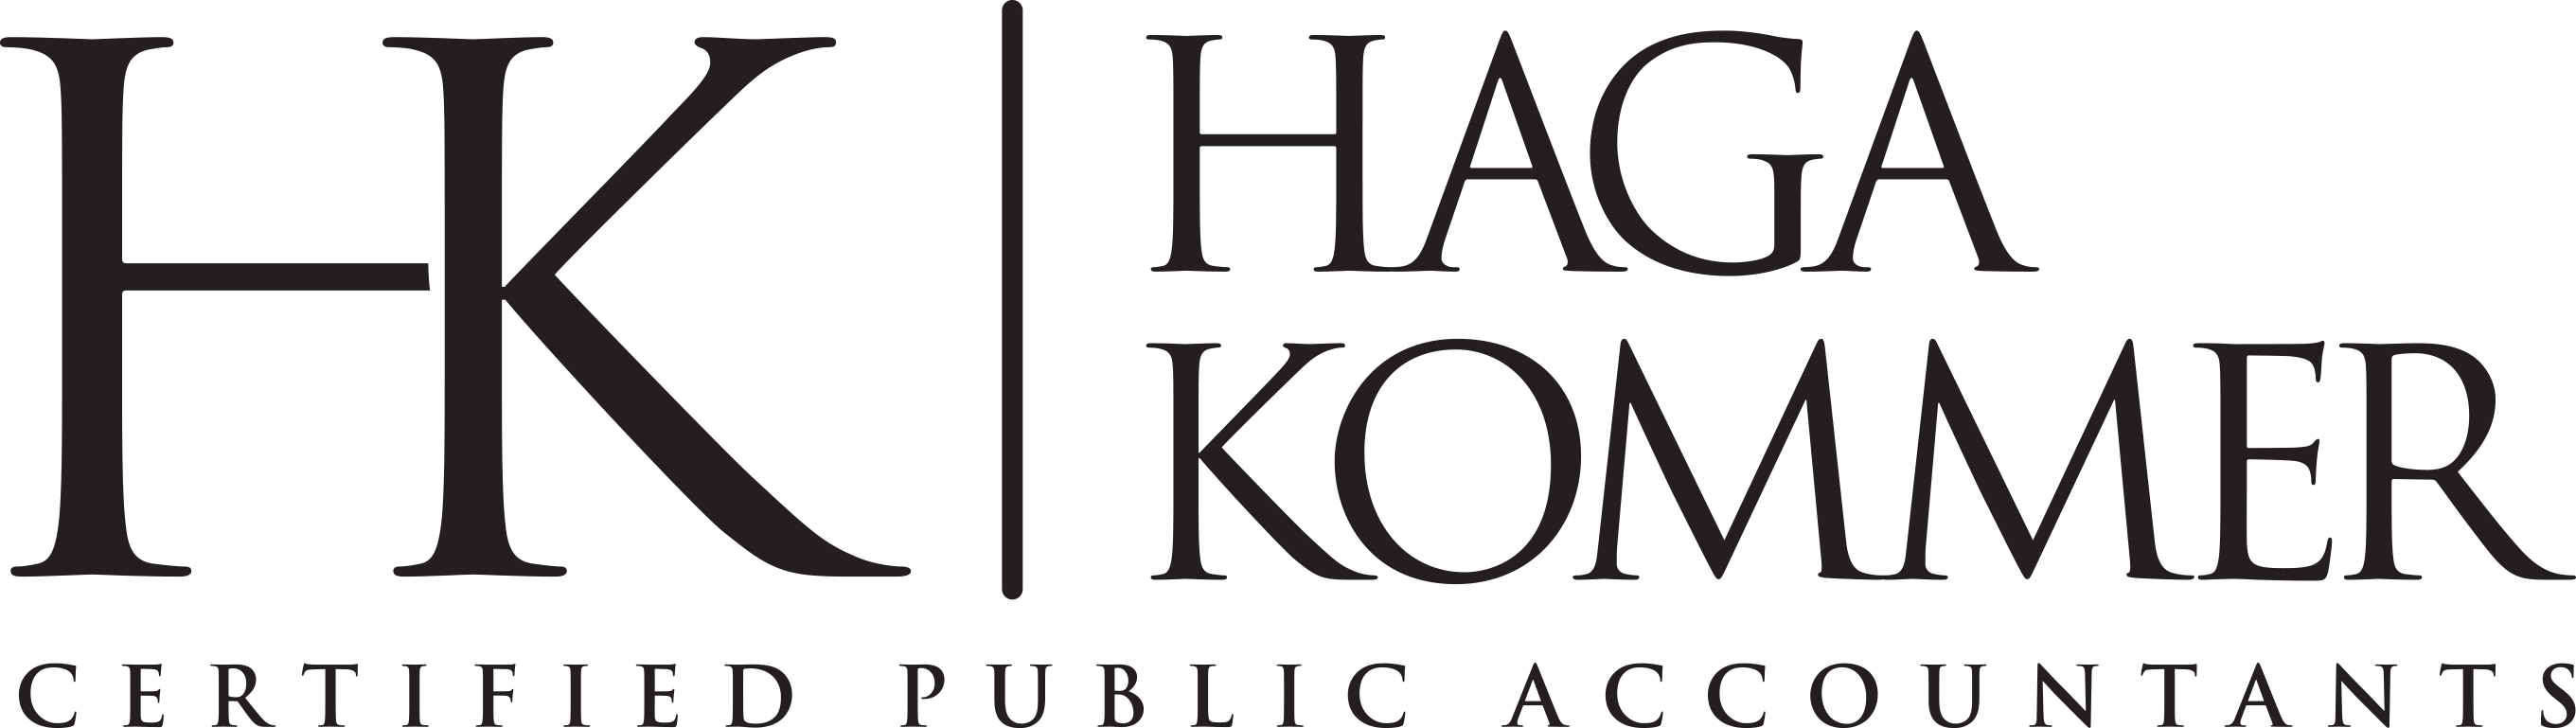 North Dakota CPA Firm | St. Cloud Office Page | Haga Kommer, Ltd.